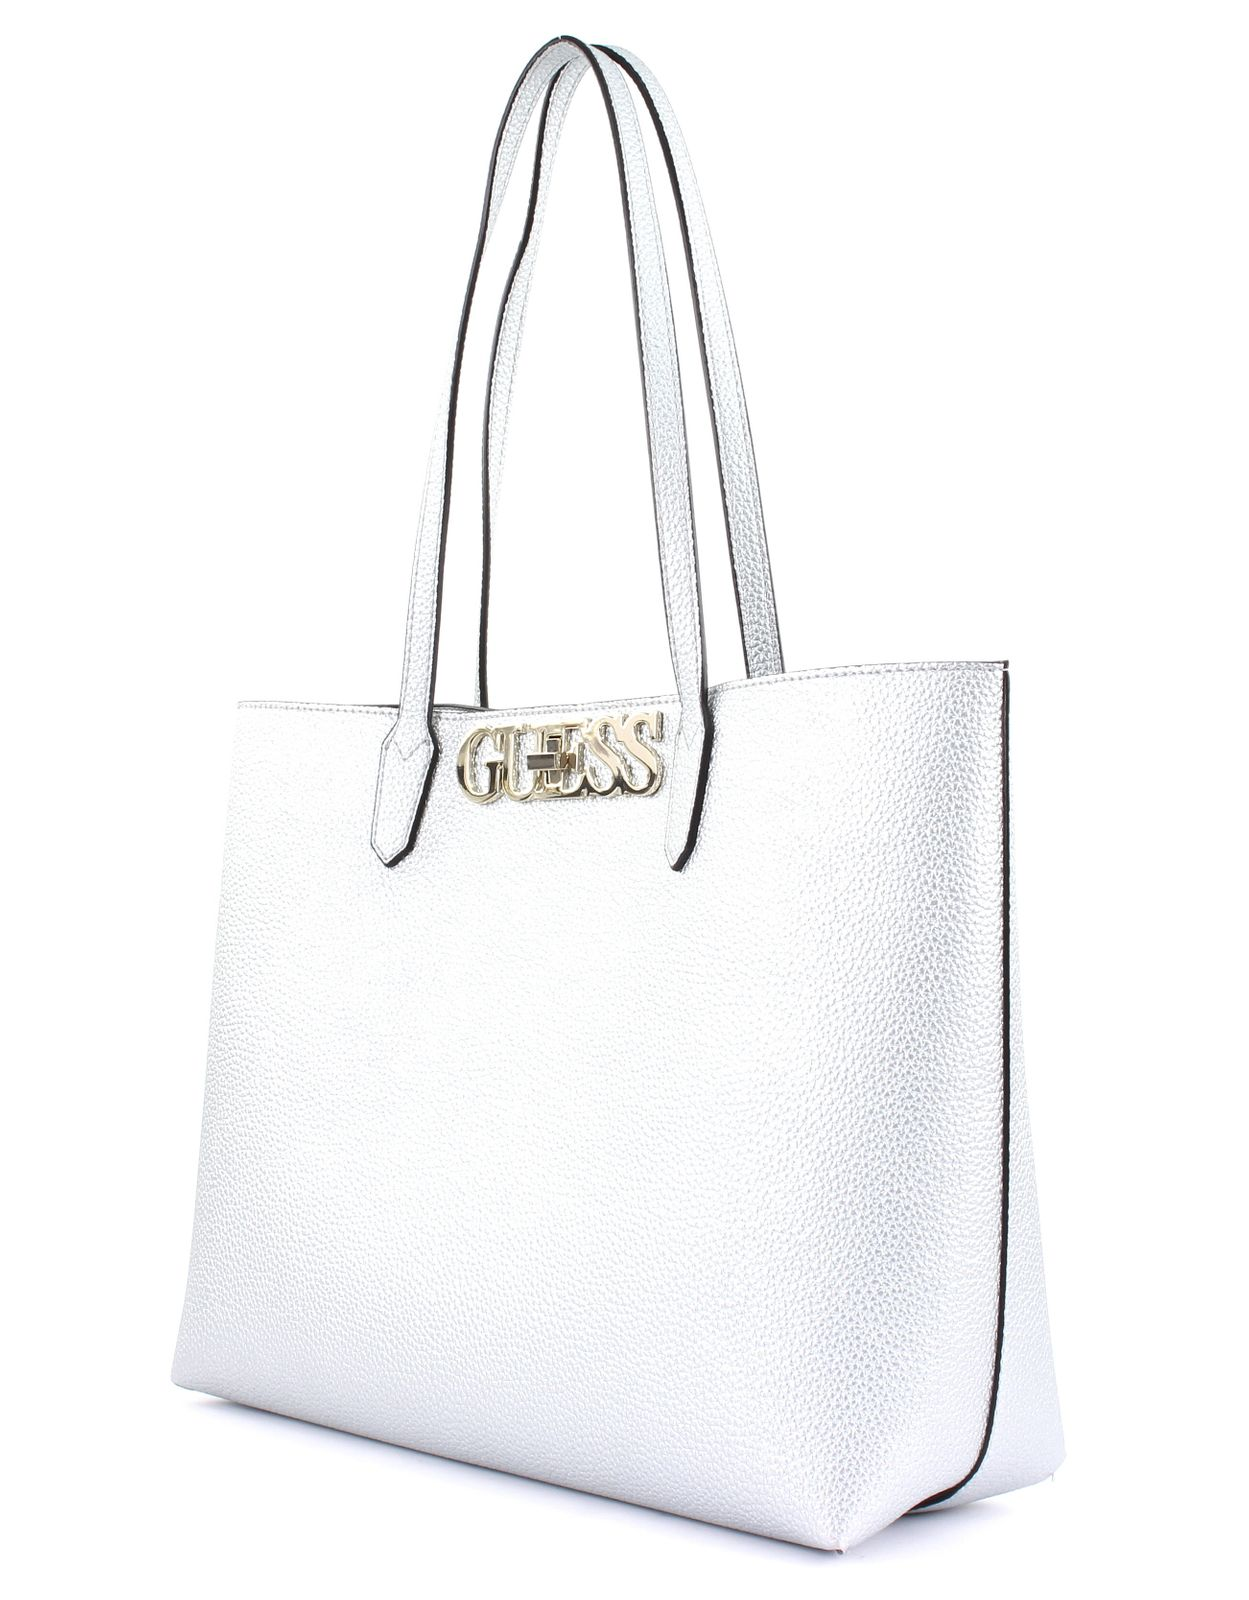 5da756a2 ... To CloseGUESS Uptown Chic Barcelona Tote Silver / 88,00 €*Tap To  CloseOnly possible if you pay by Paypal, Amazon Payments, Credit Card, Cash  on Delivery ...